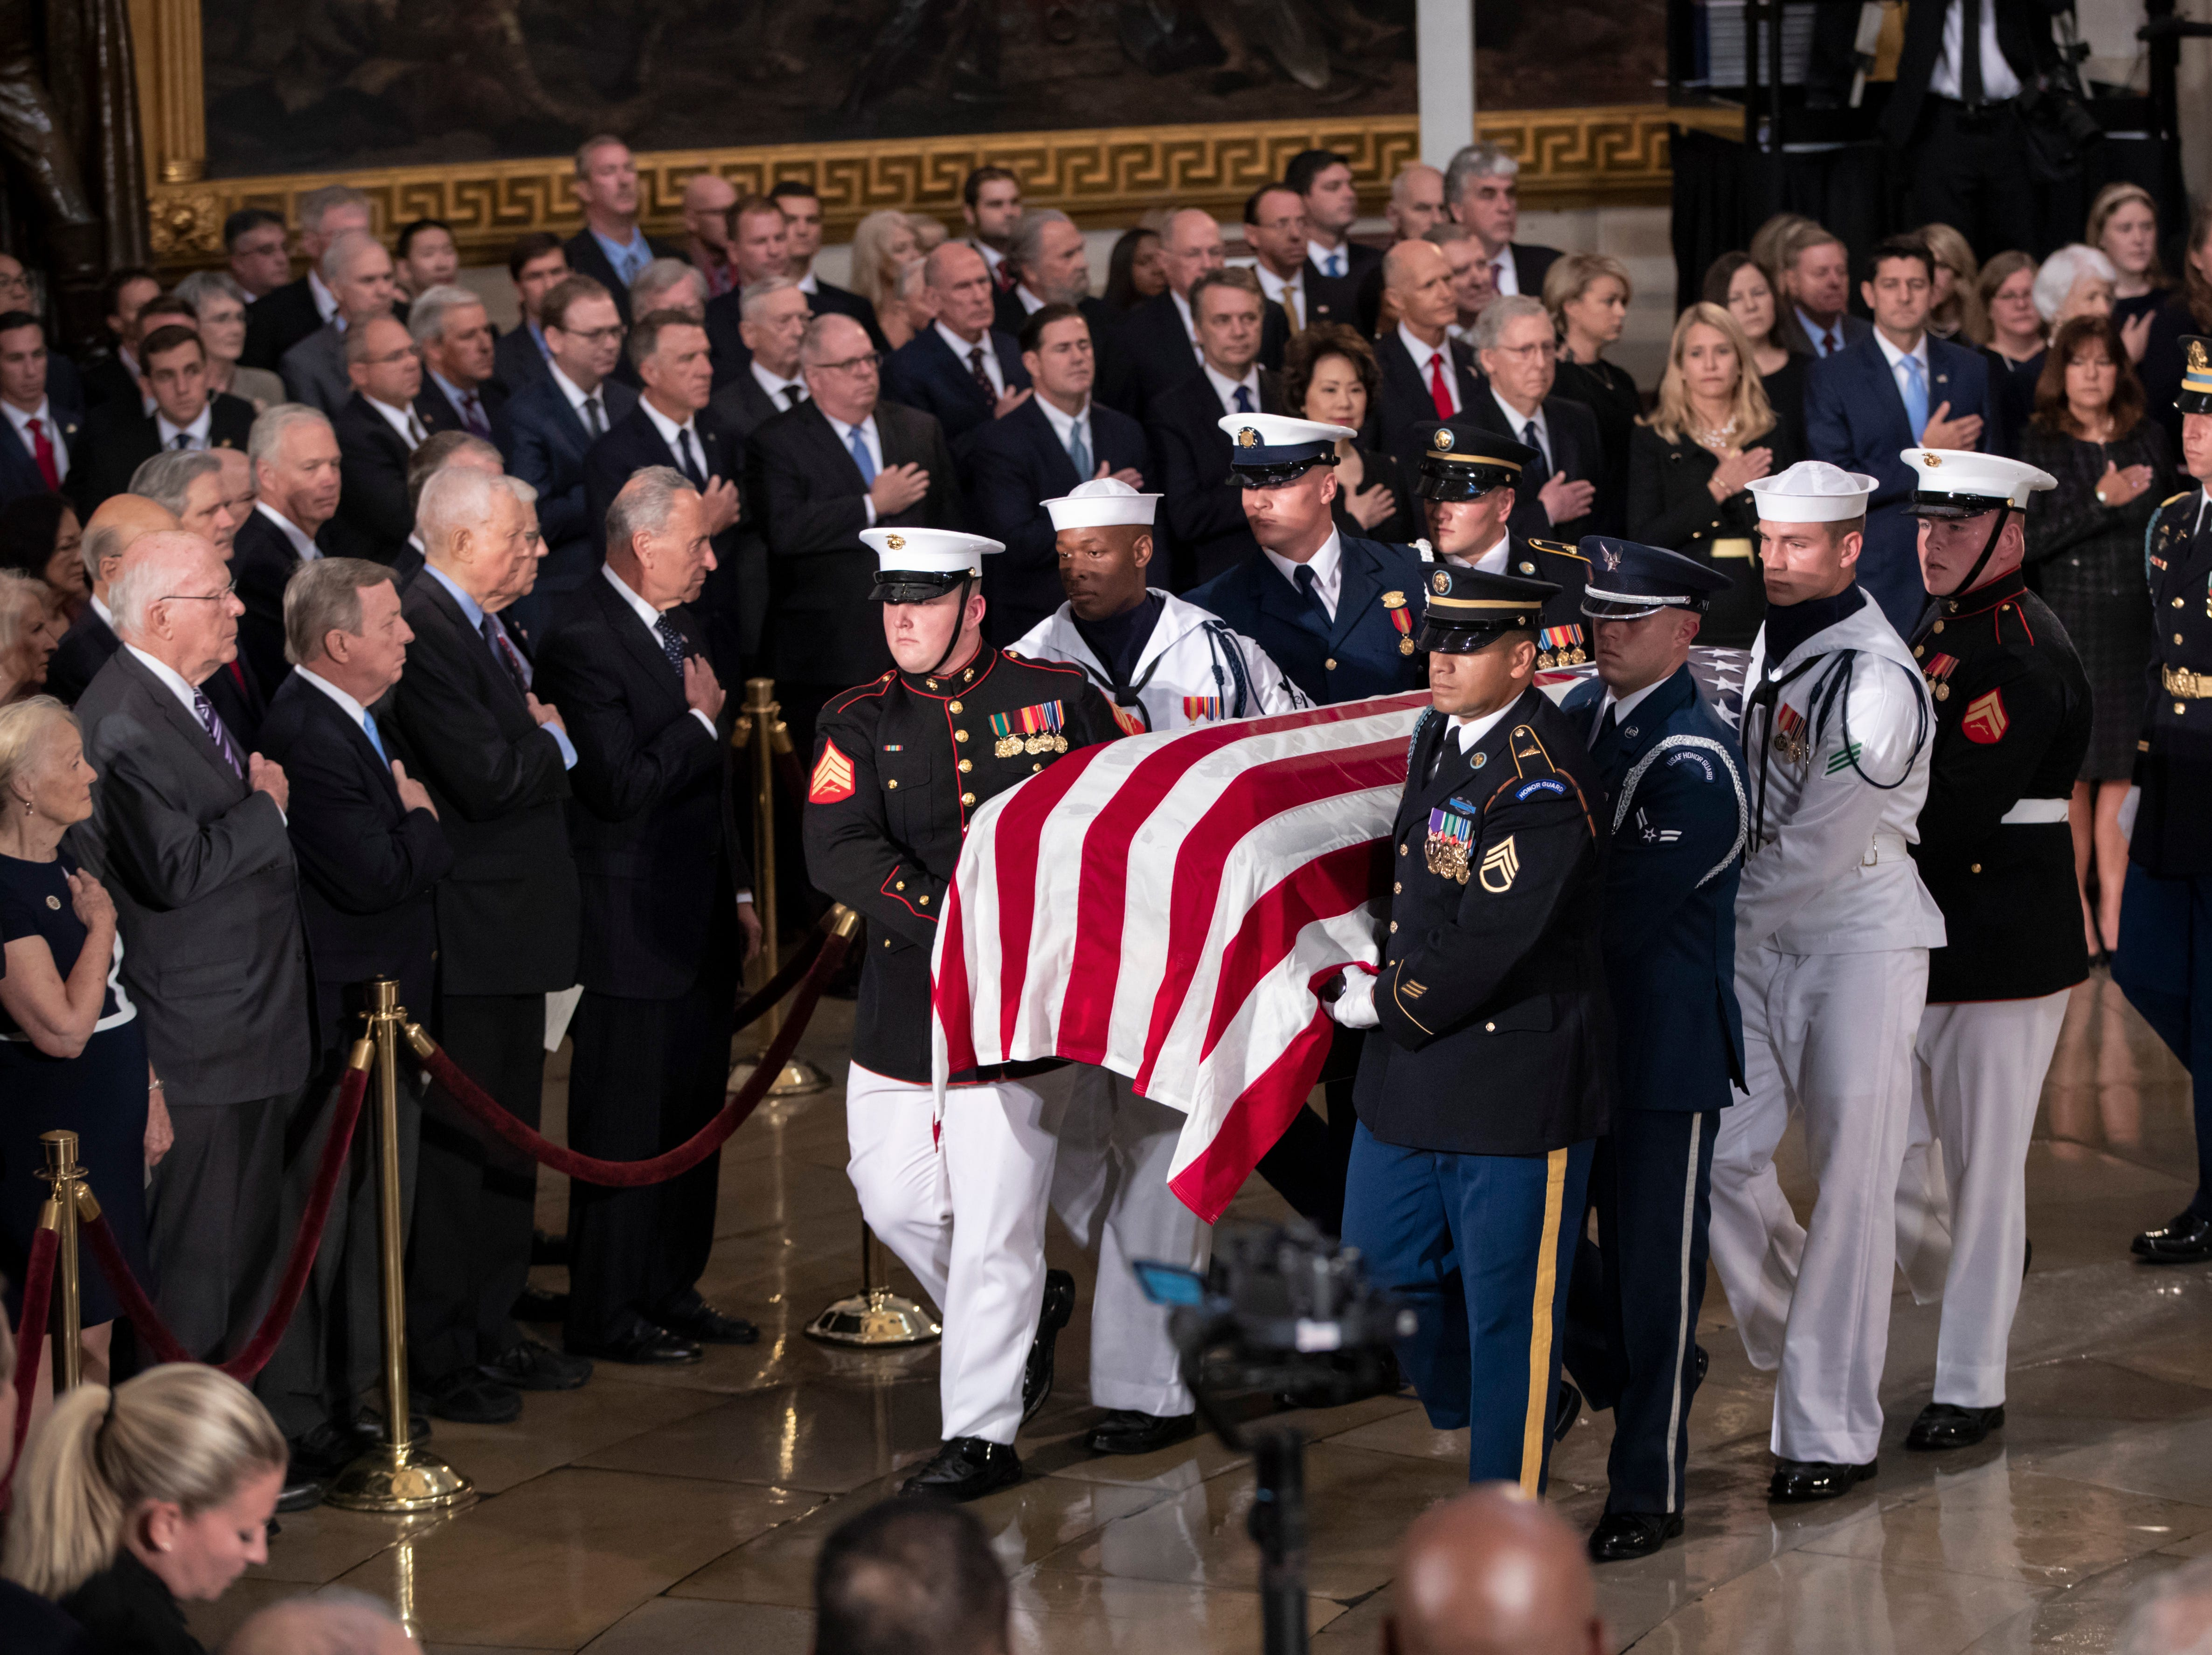 The flag-draped casket of Sen. John McCain, R-Ariz., is carried into the U.S. Capitol rotunda Aug. 31, 2018, in Washington.